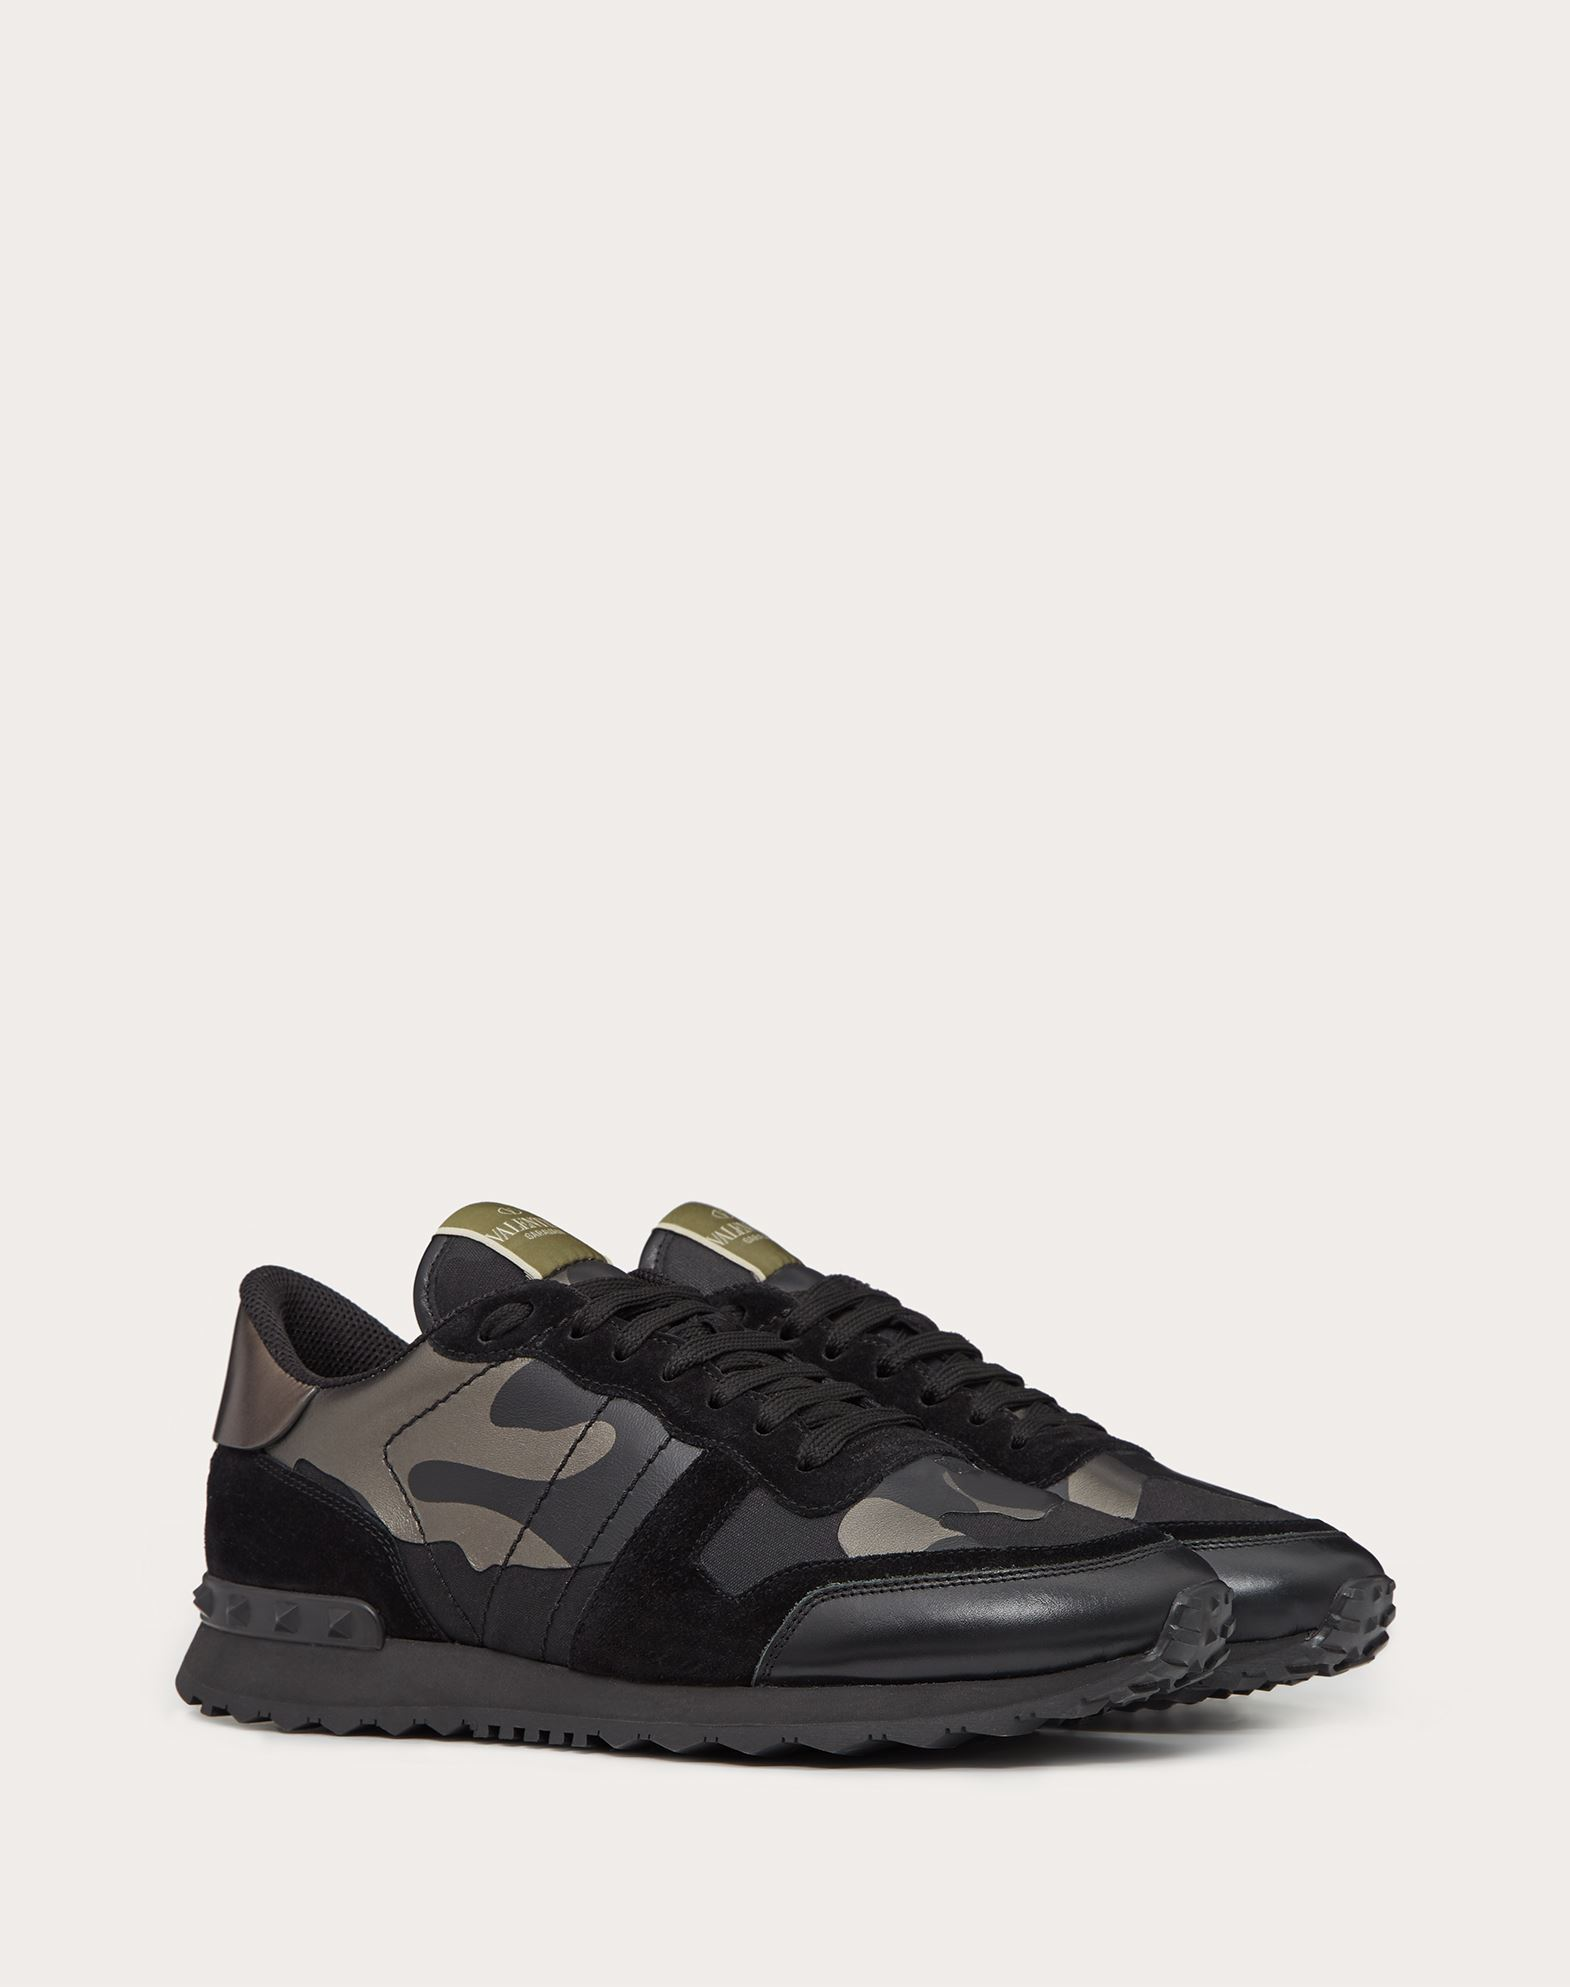 VALENTINO GARAVANI UOMO Camouflage Noir Rockrunner 运动鞋 LOW-TOP SNEAKERS U r